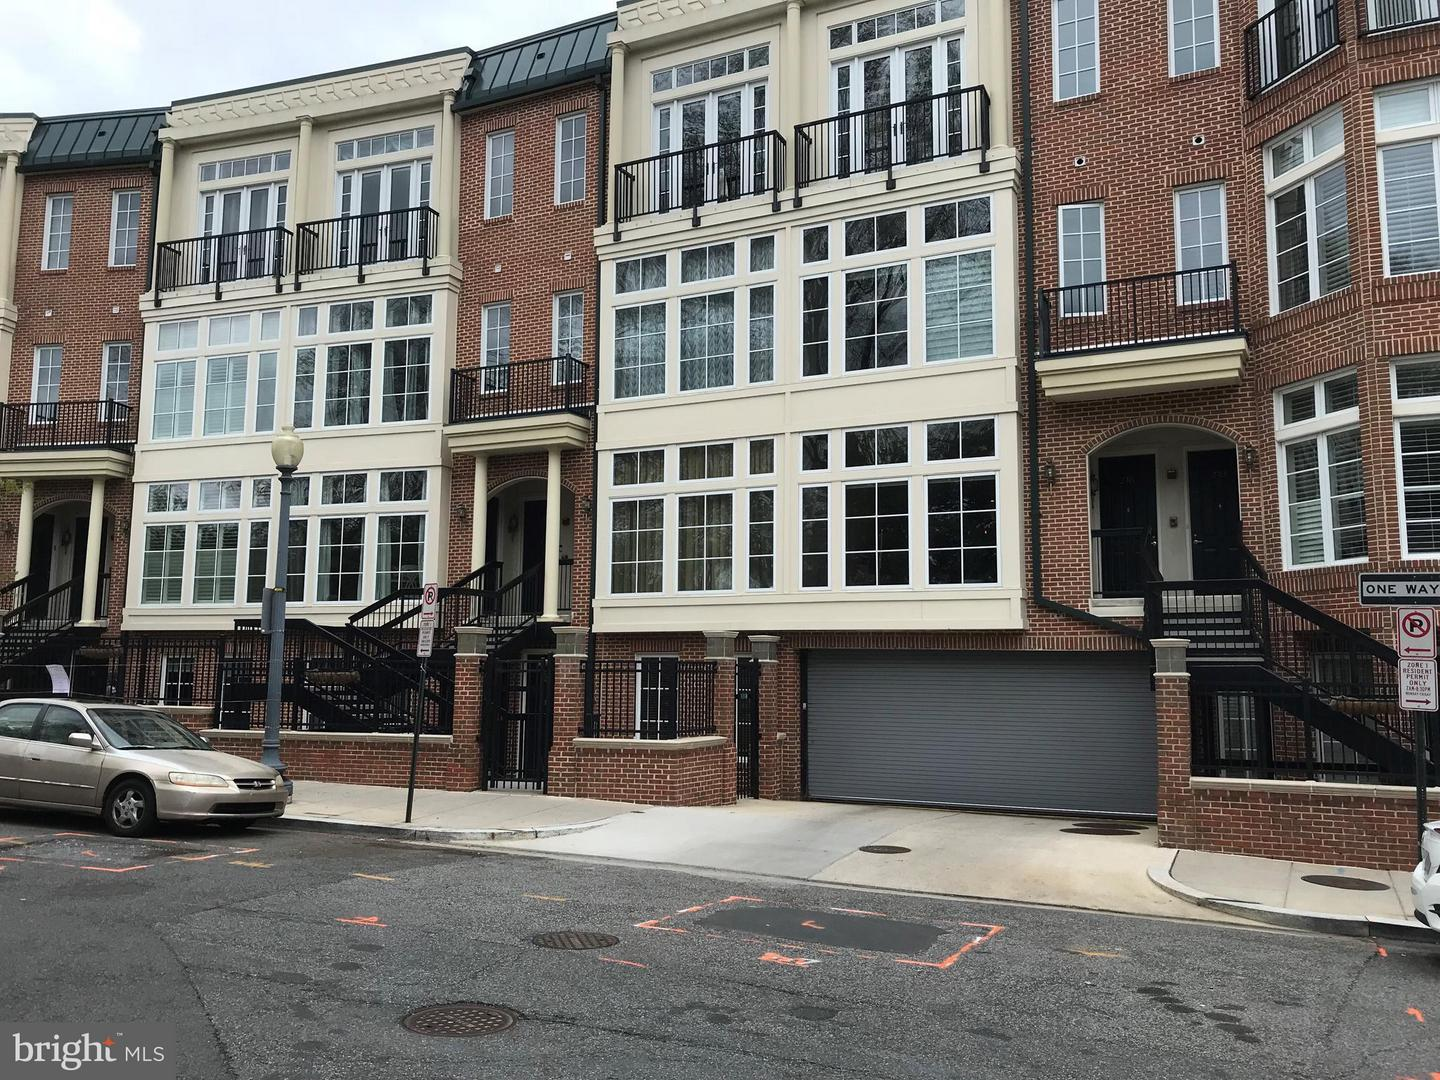 Condo / Townhouse for Sale at MERIDIAN CRESCENT CONDO, 2200 17th Street NW Washington, District Of Columbia 20009 United States